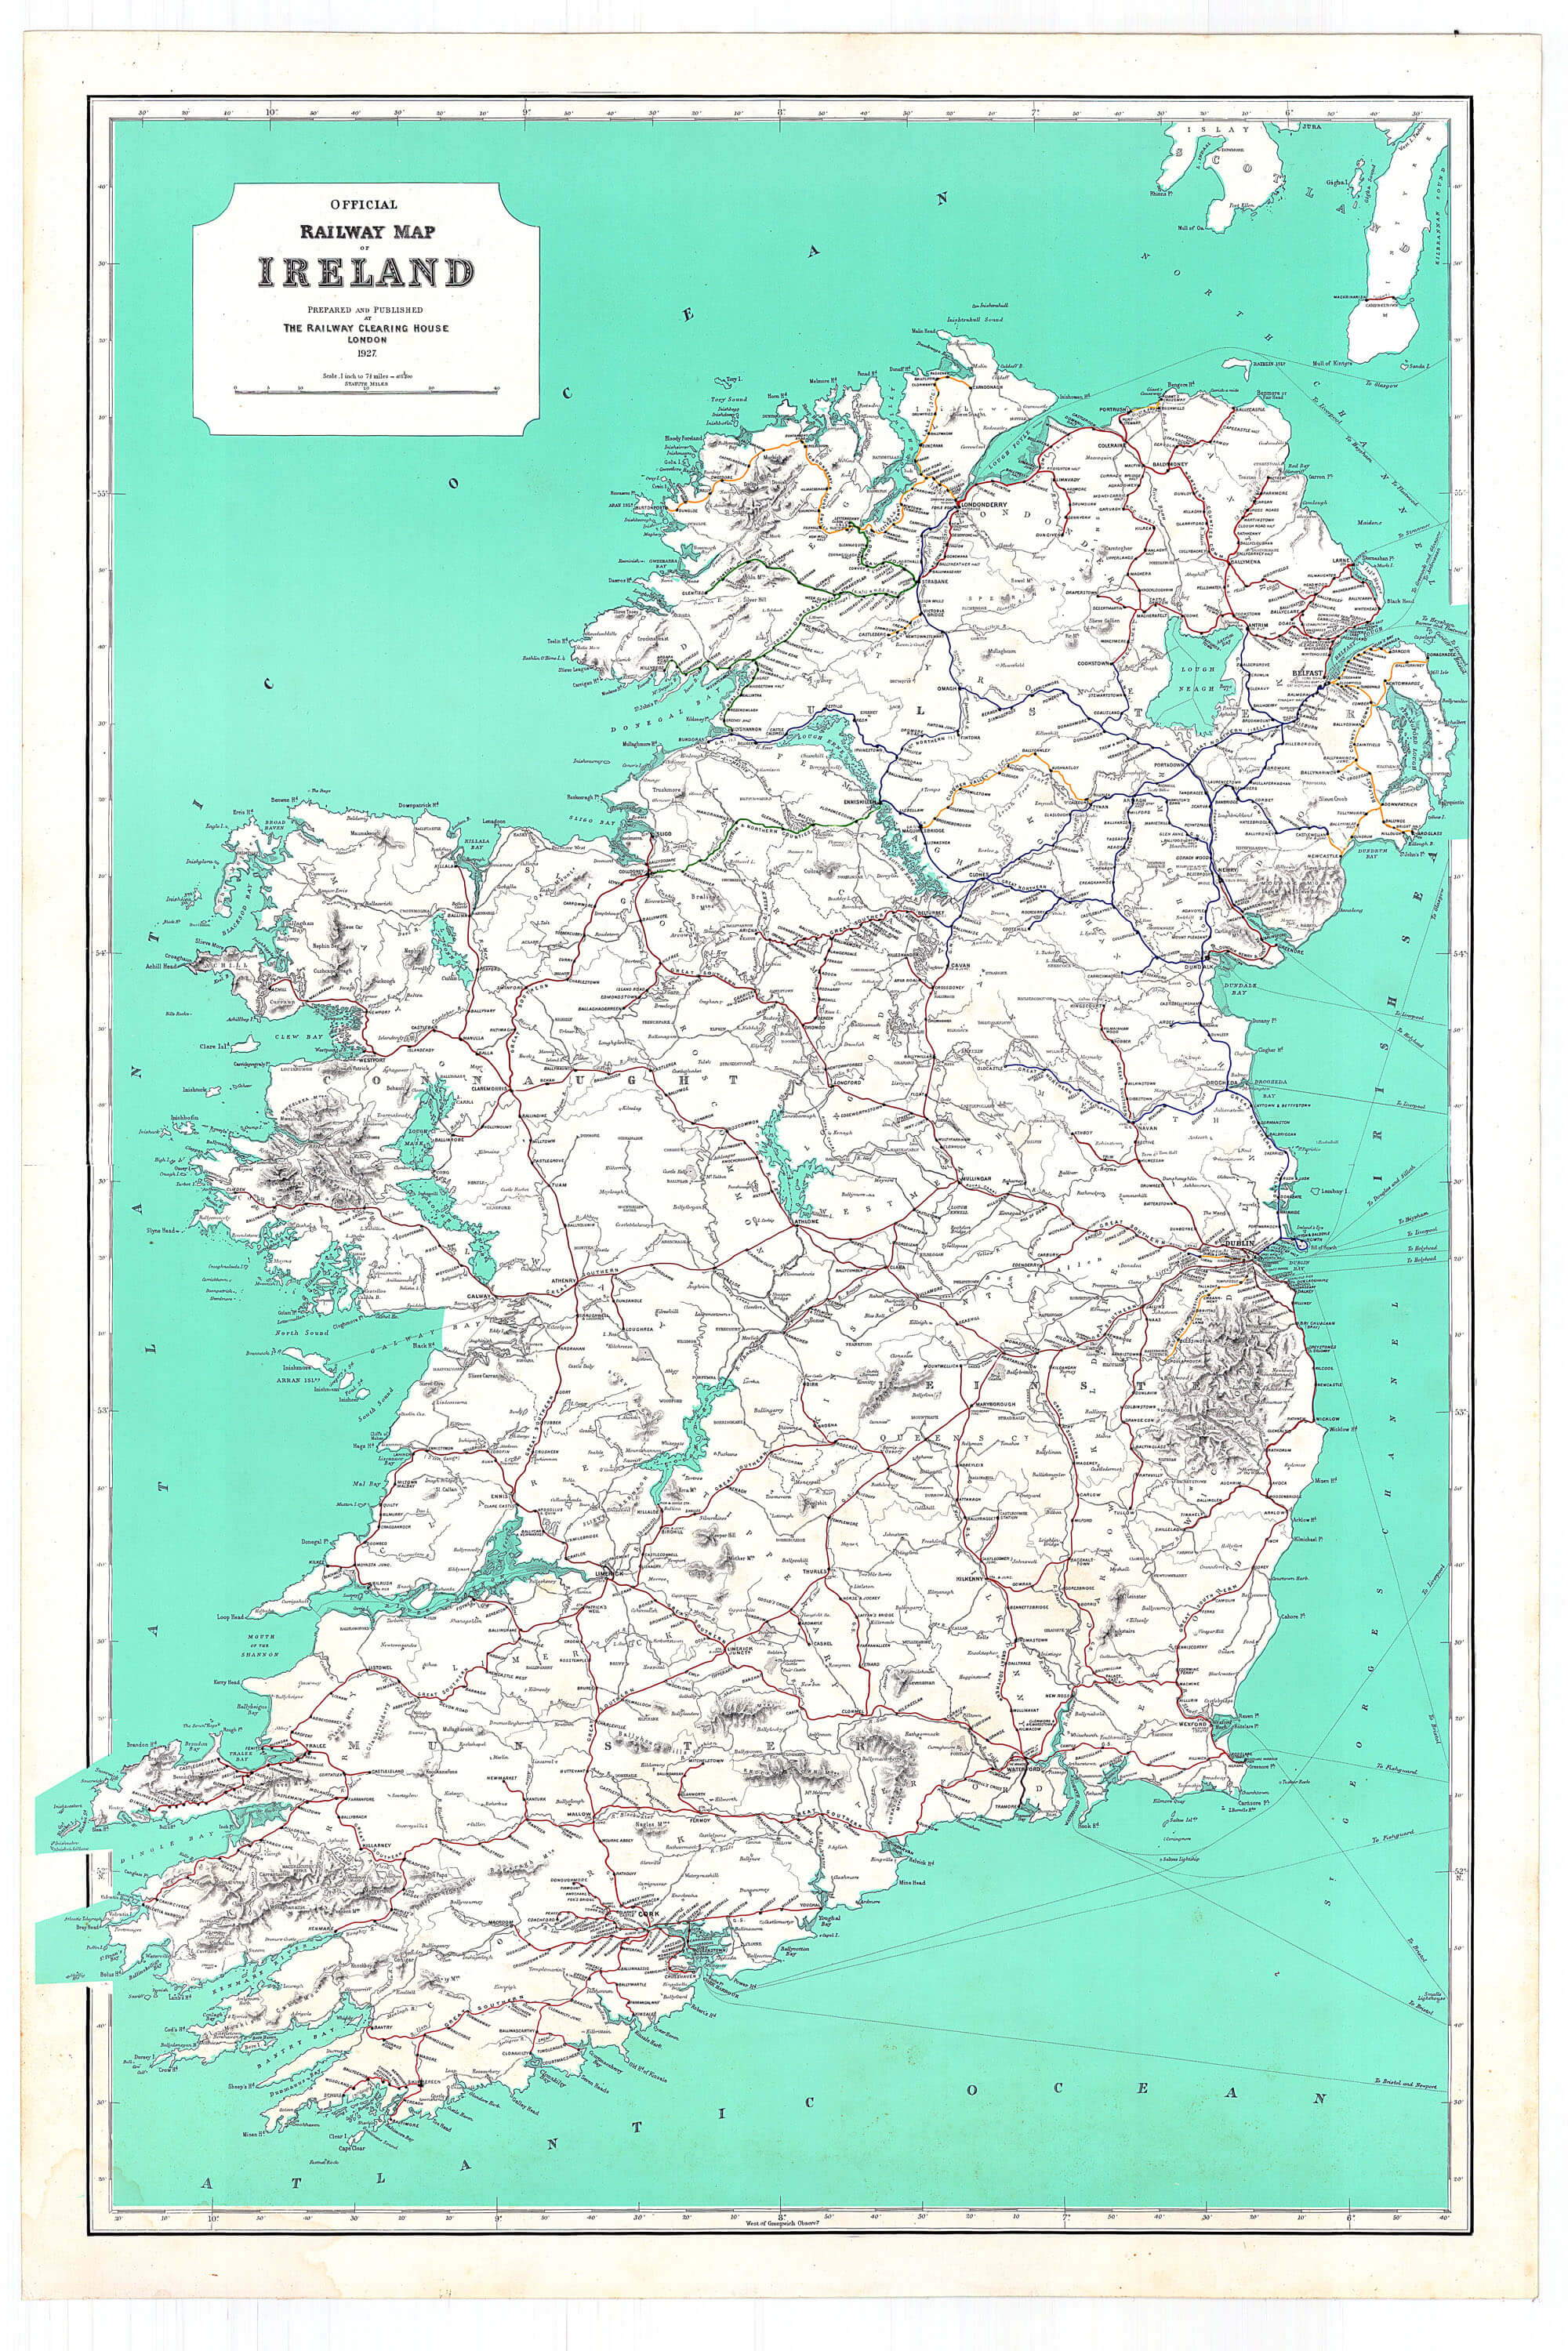 Rail Map Of Ireland.Ireland Maps Of Railways L Brown Collection